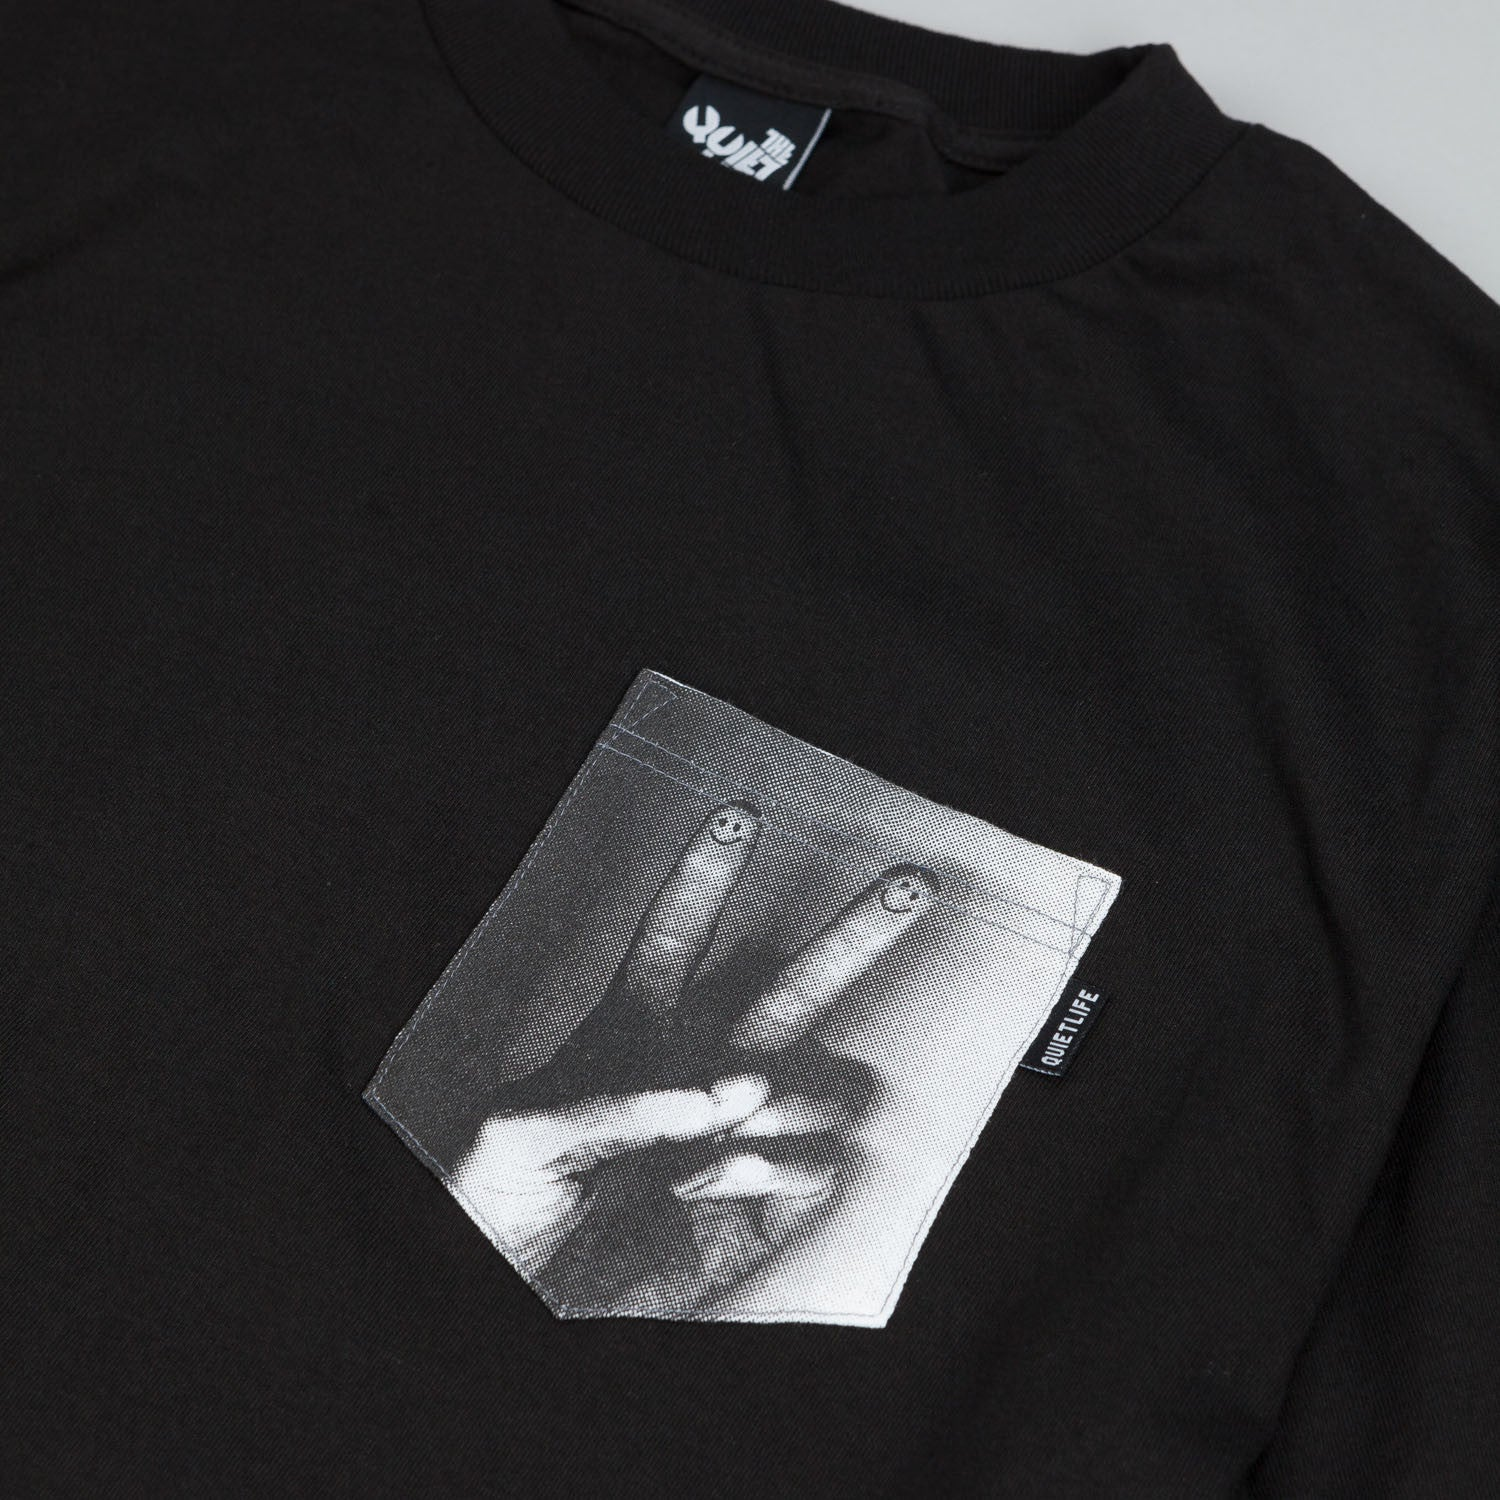 The Quiet Life Peace Photo Pocket T Shirt Black